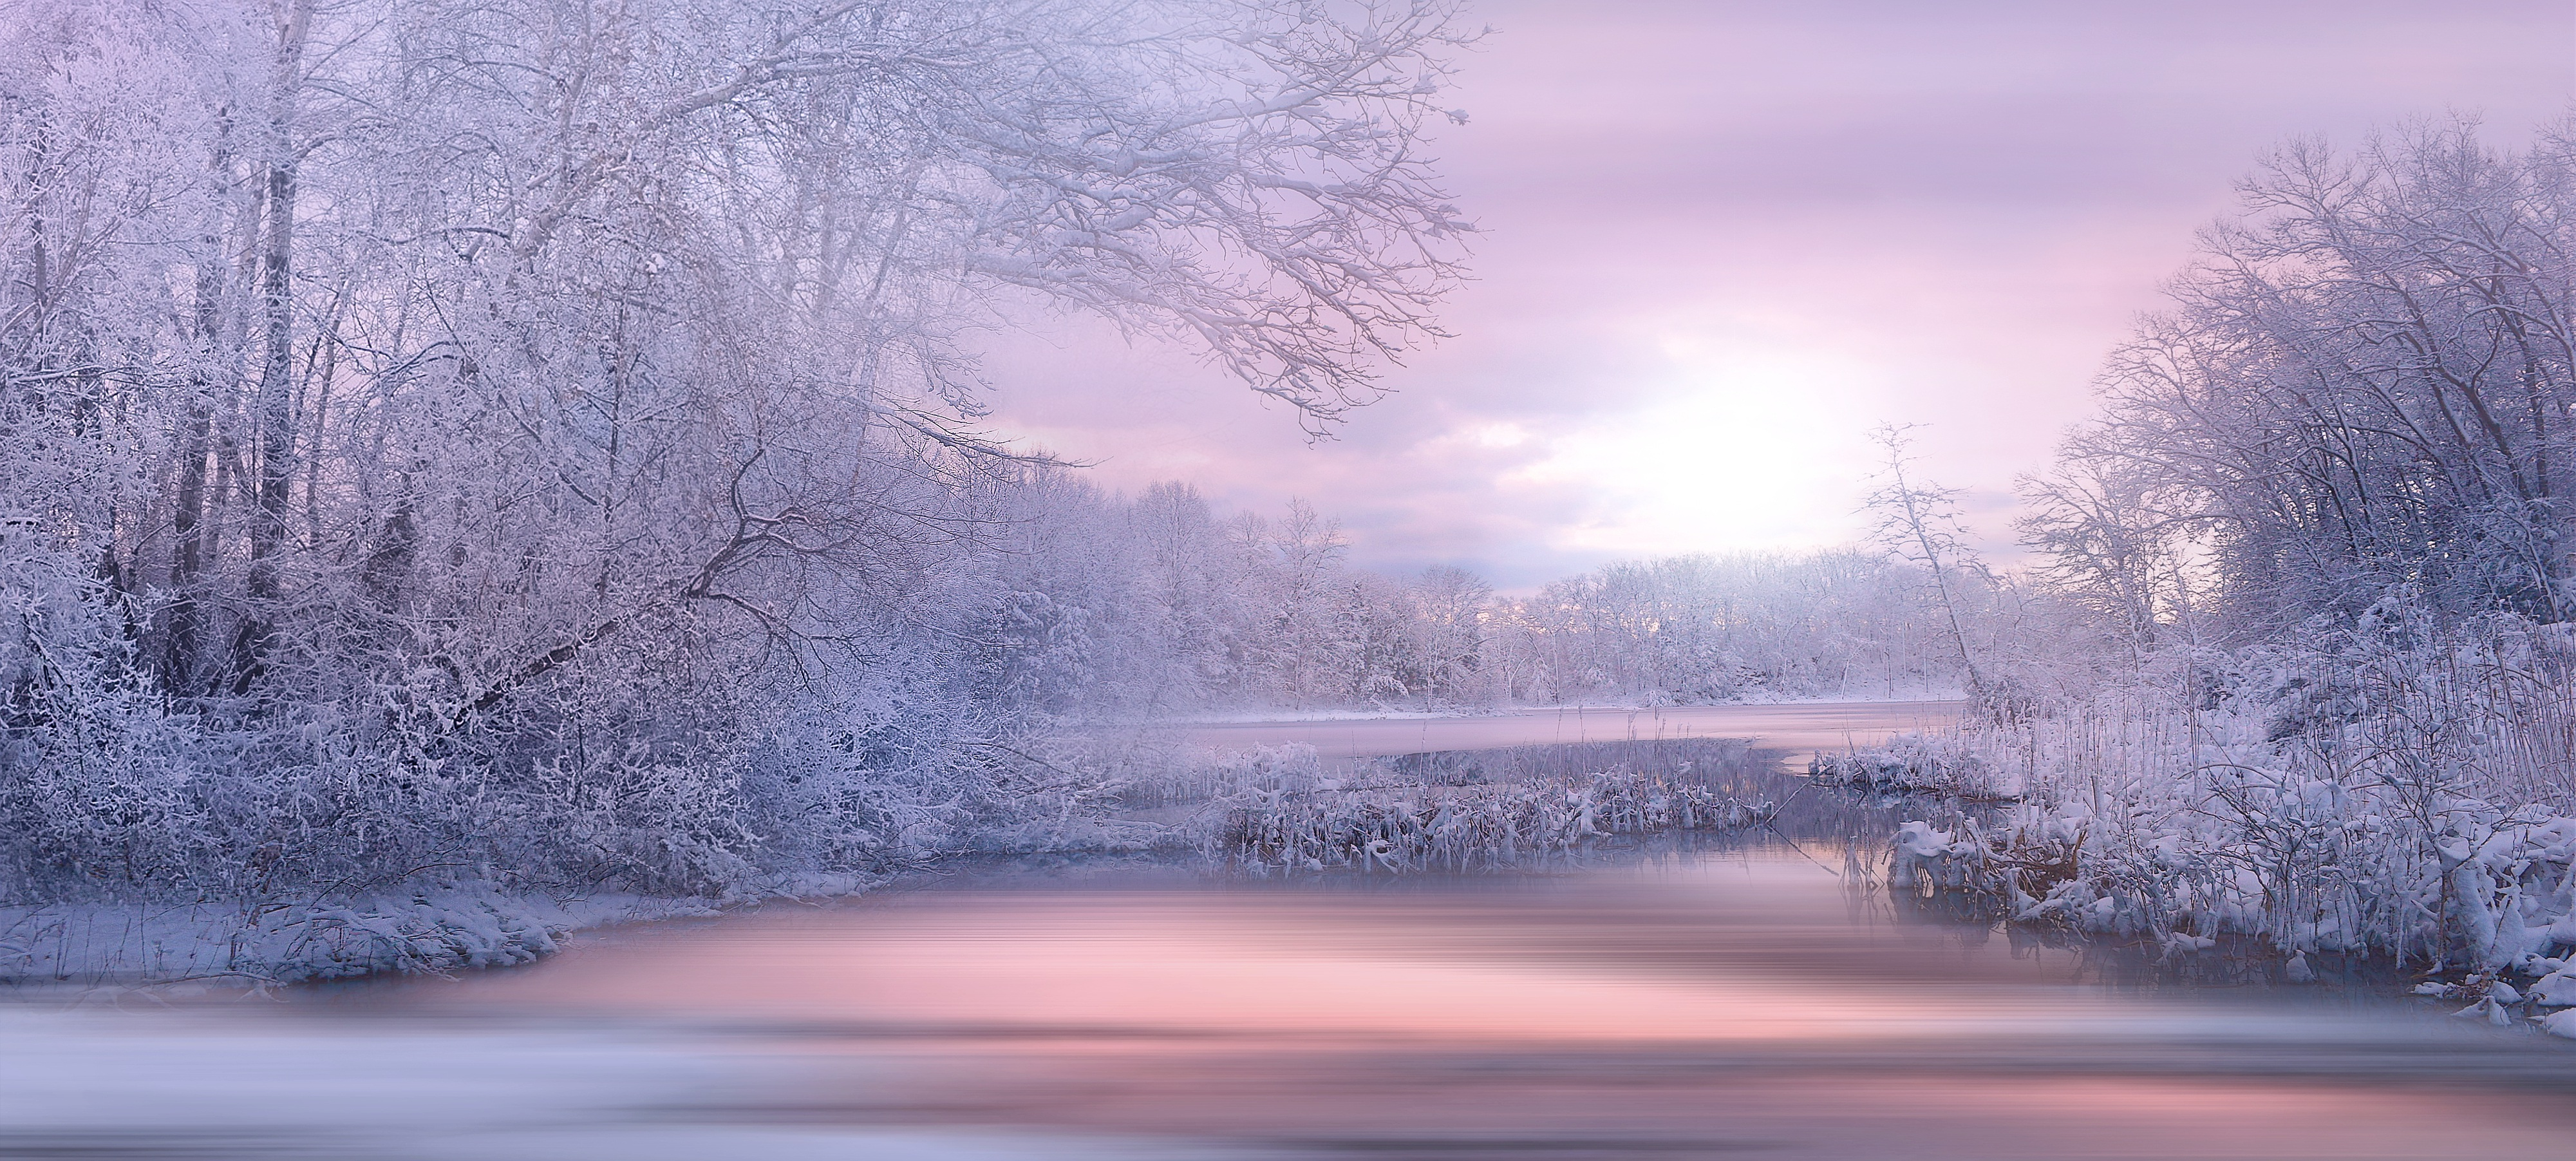 Lavender nature landscape winter